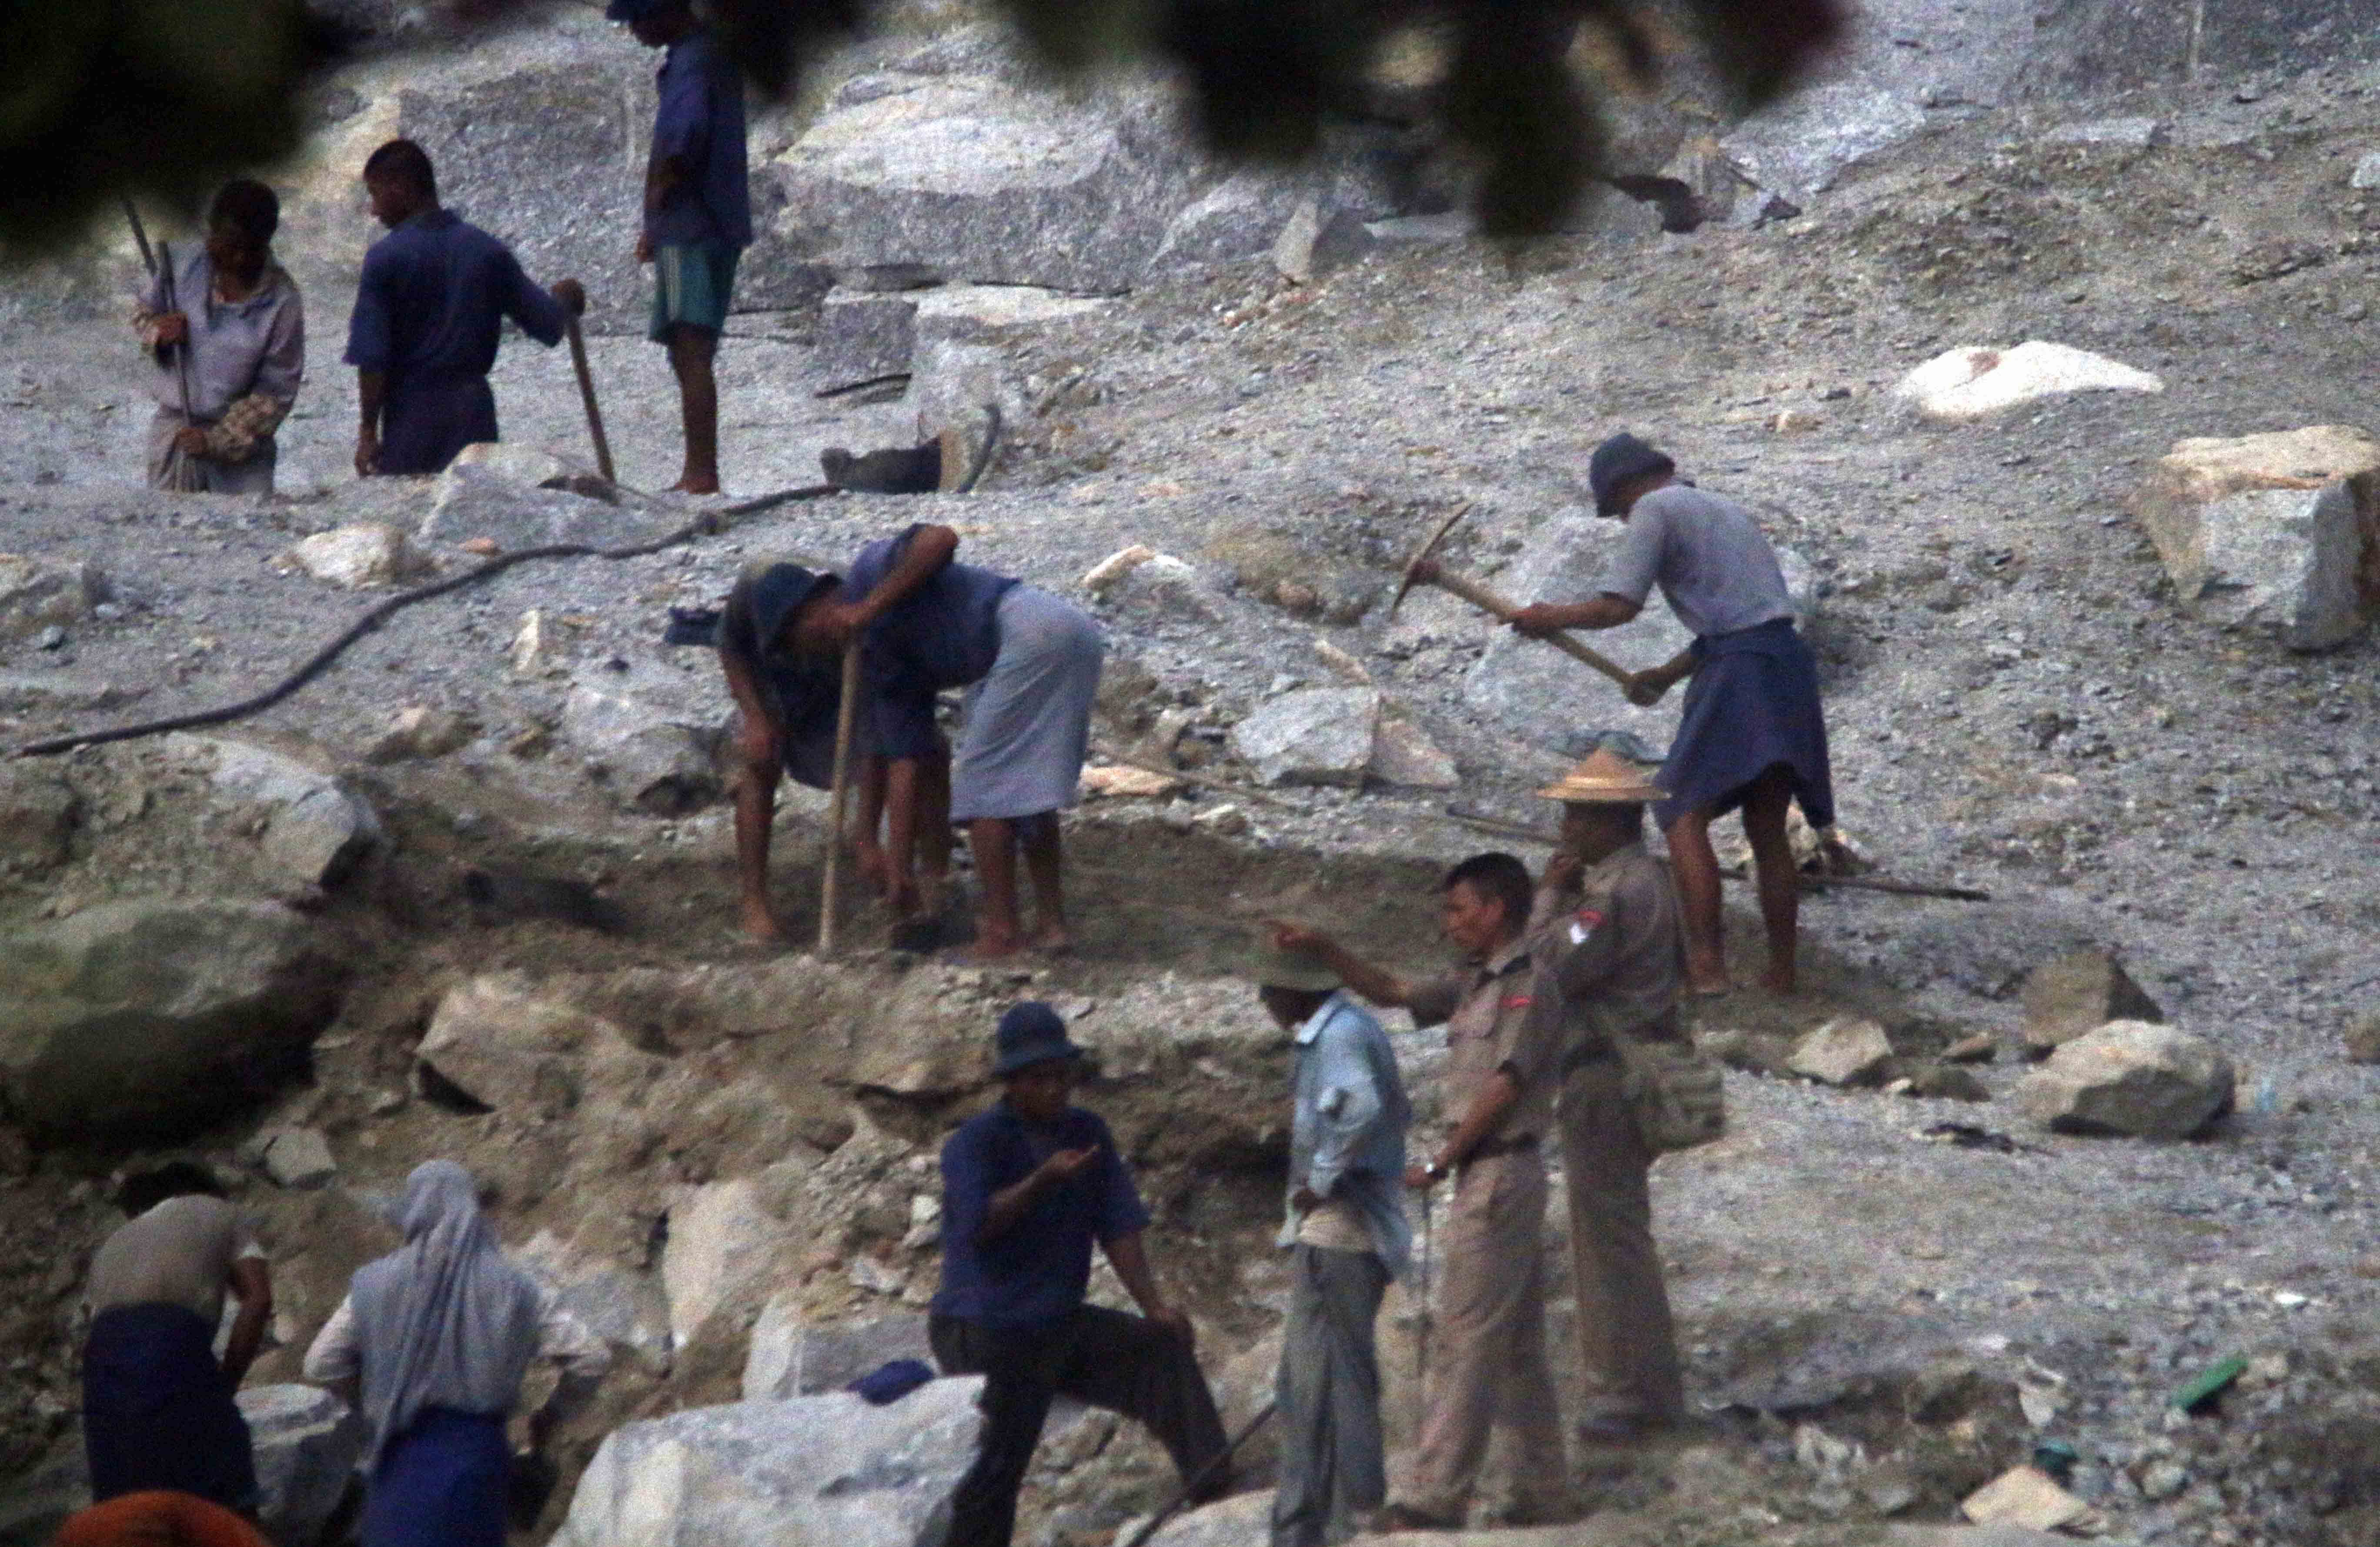 Prision laborers break rock in a quarry